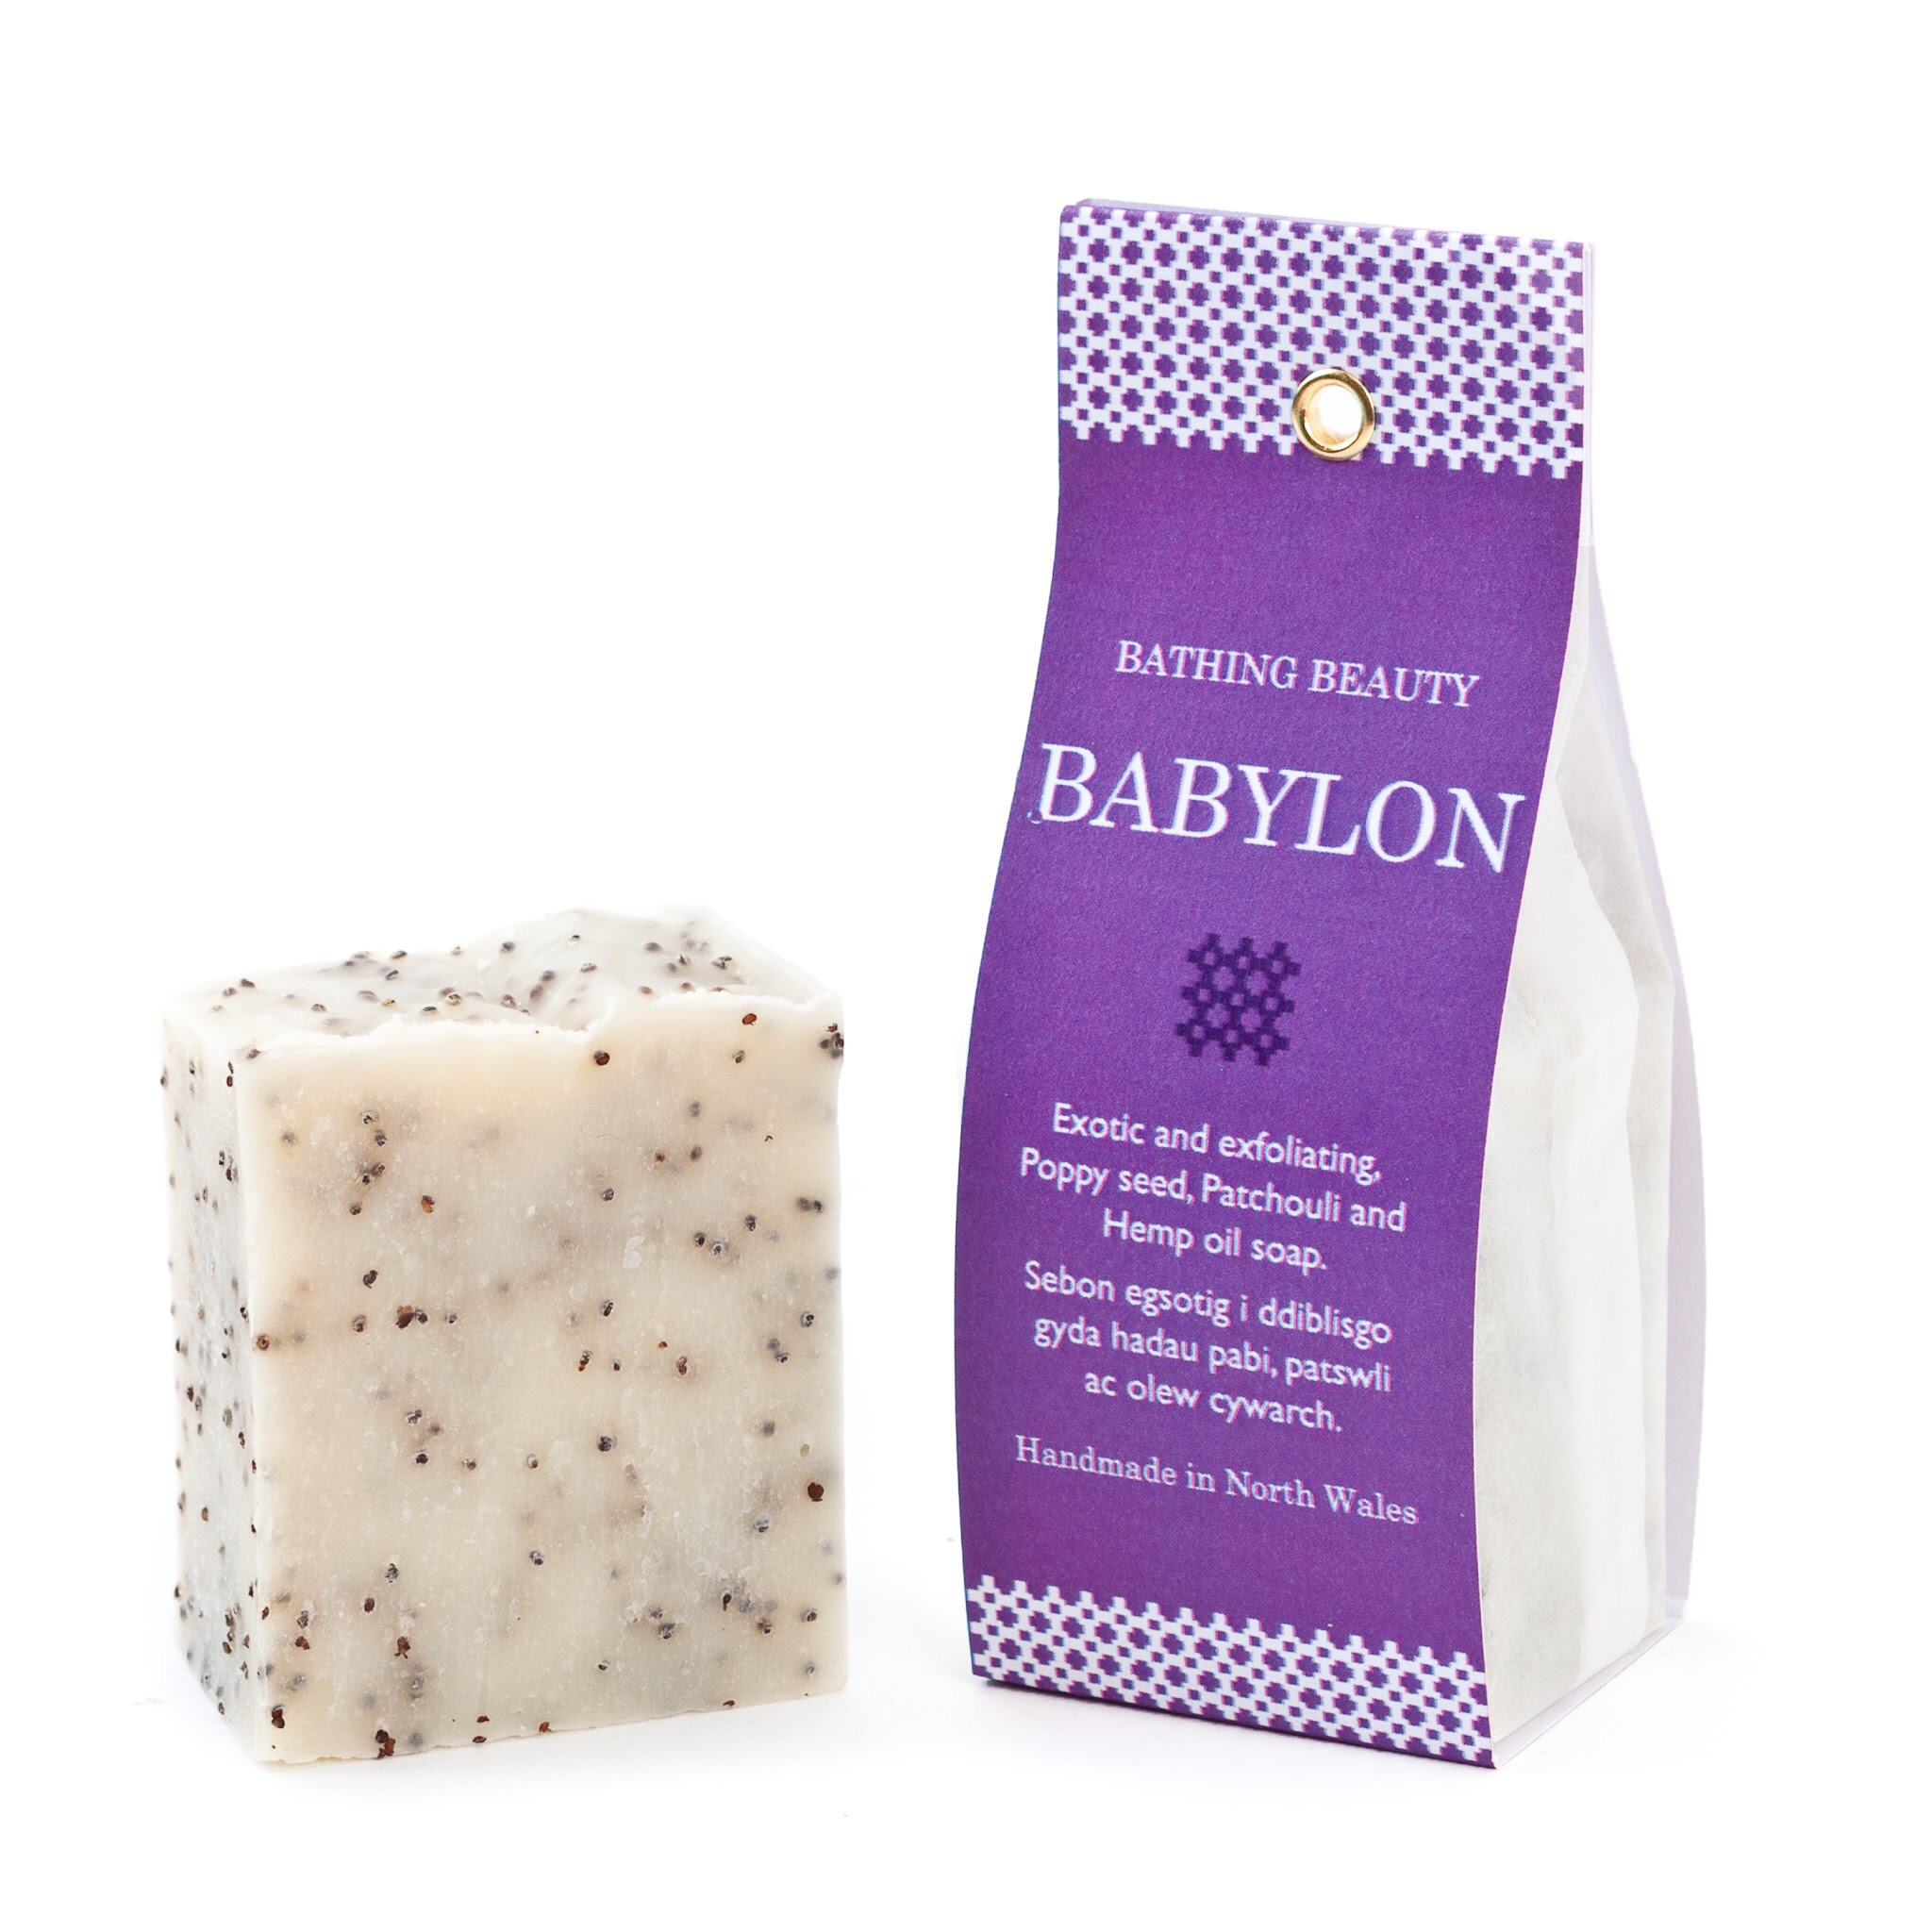 Babylon, patchouli scented, hemp oil infused, poppy seed studded soap